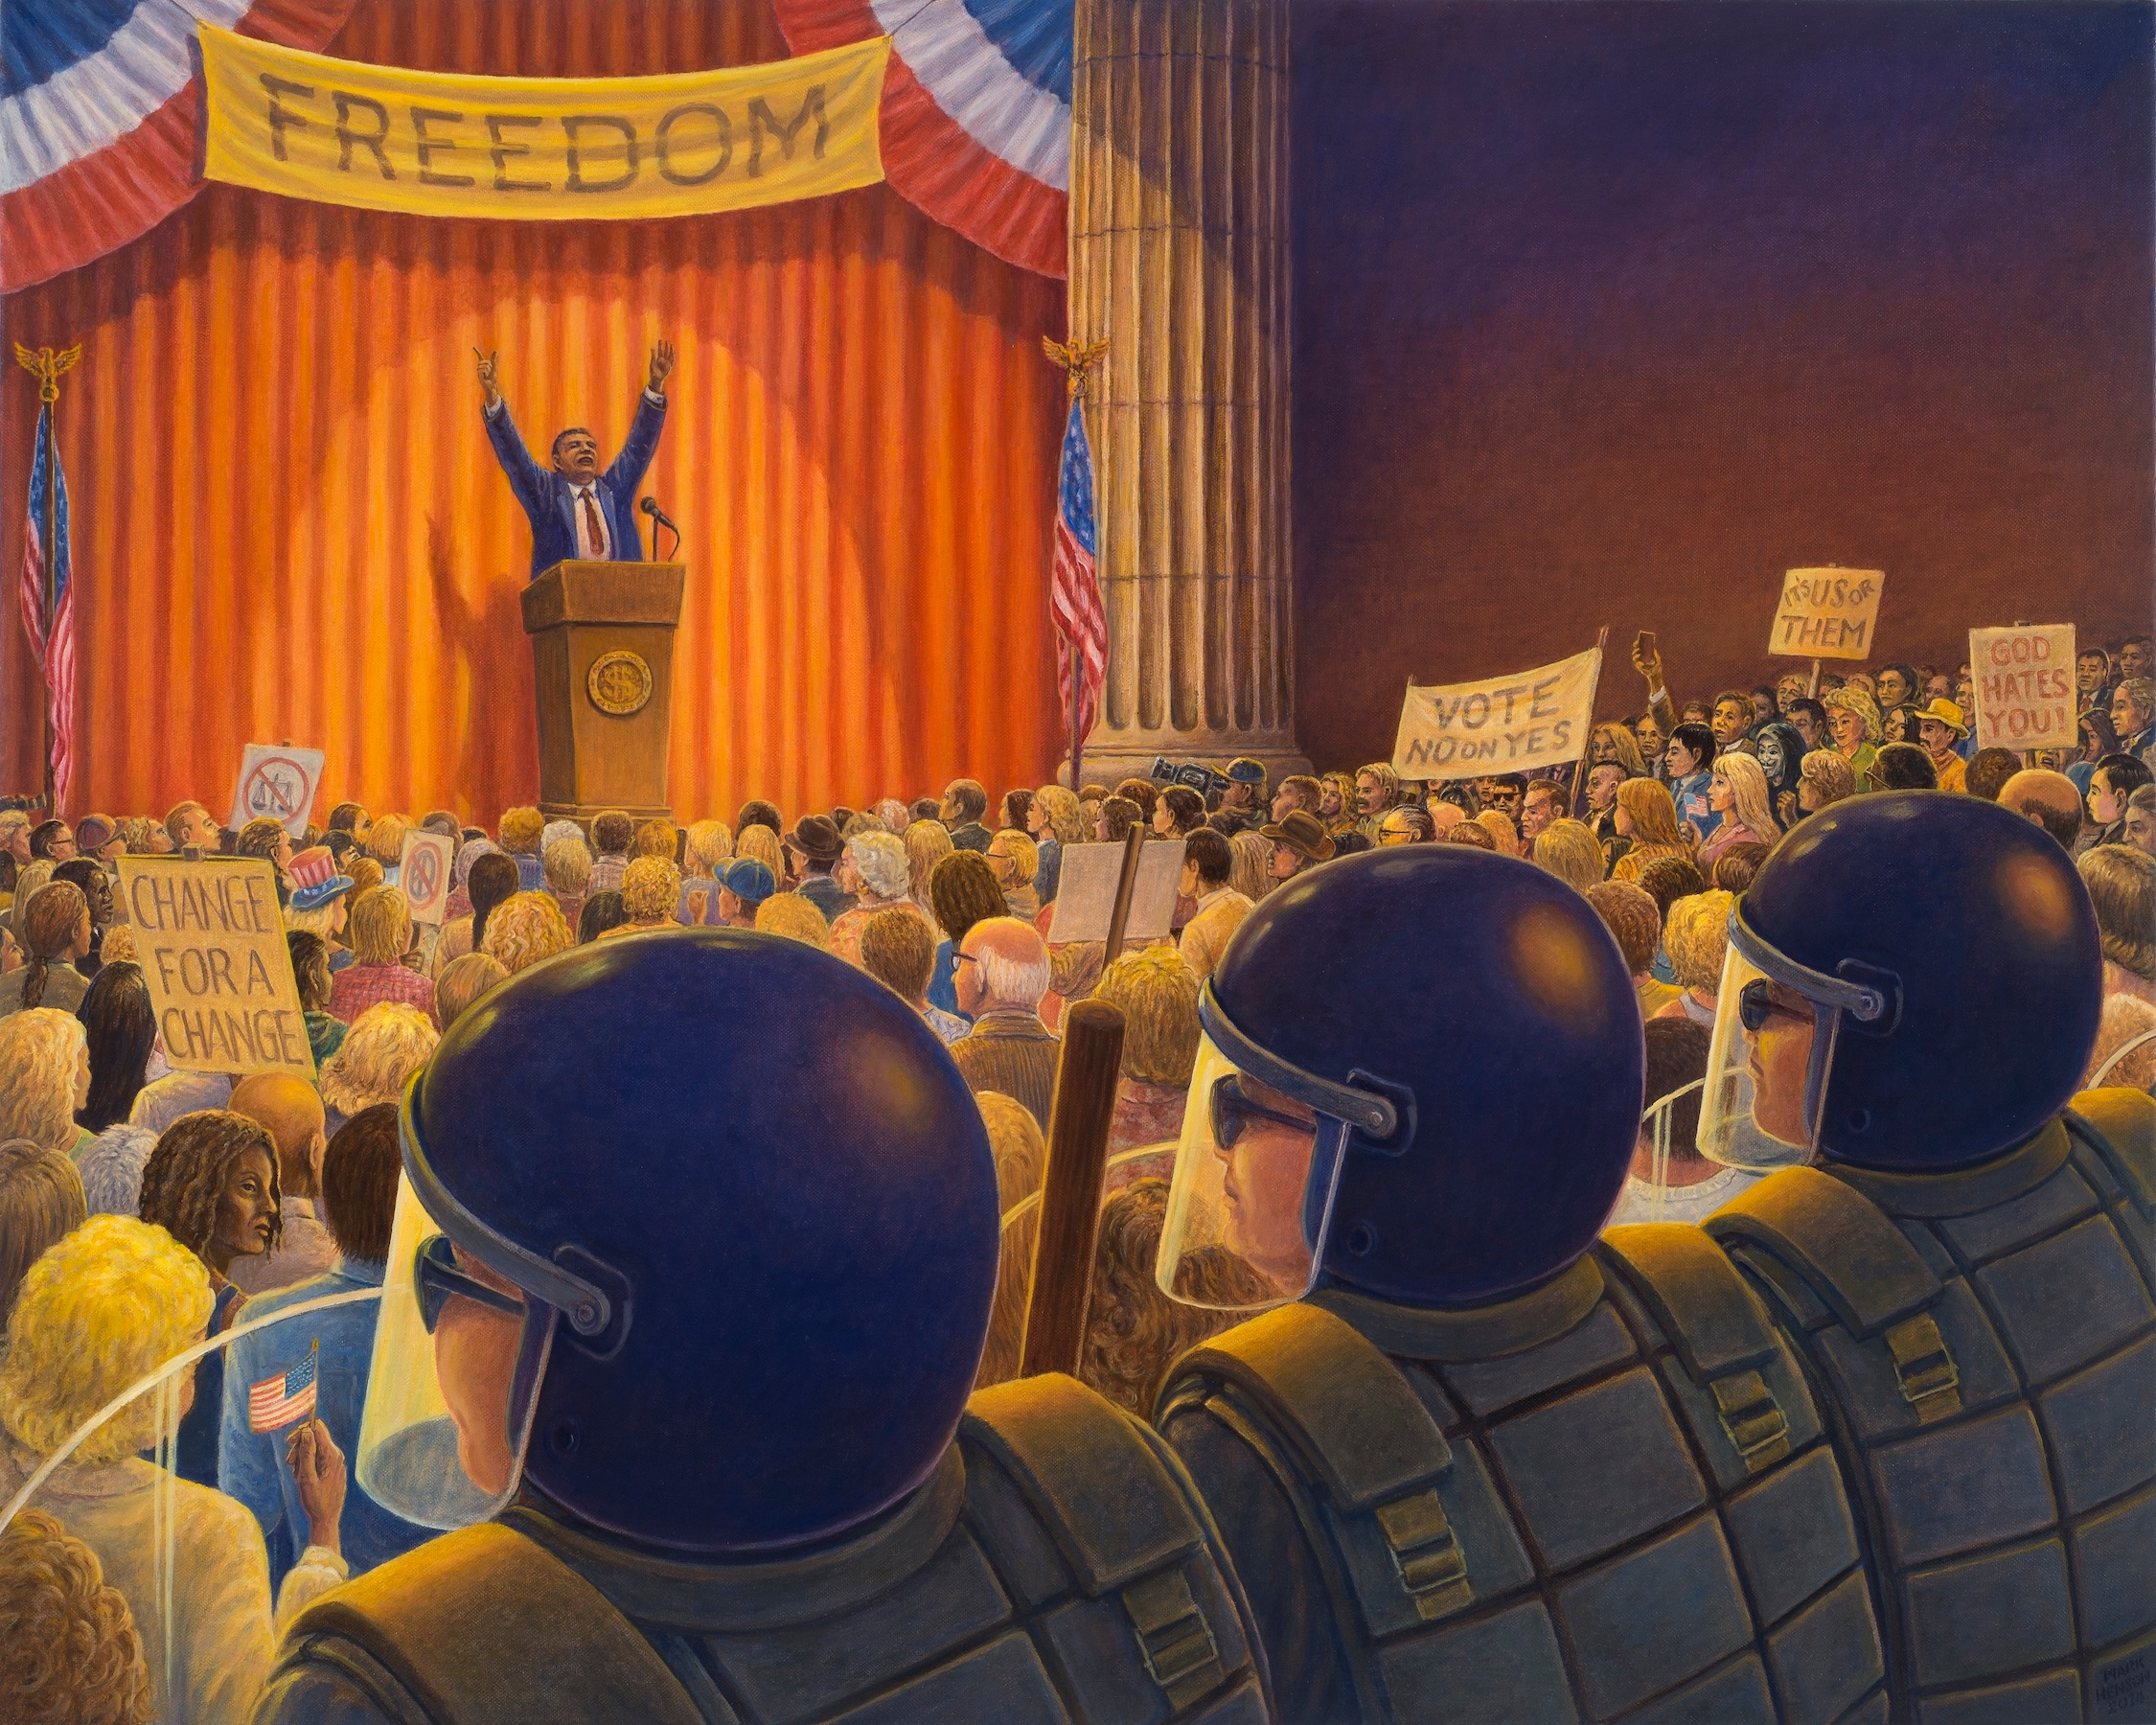 Cost of freedom giclee dmqvlg